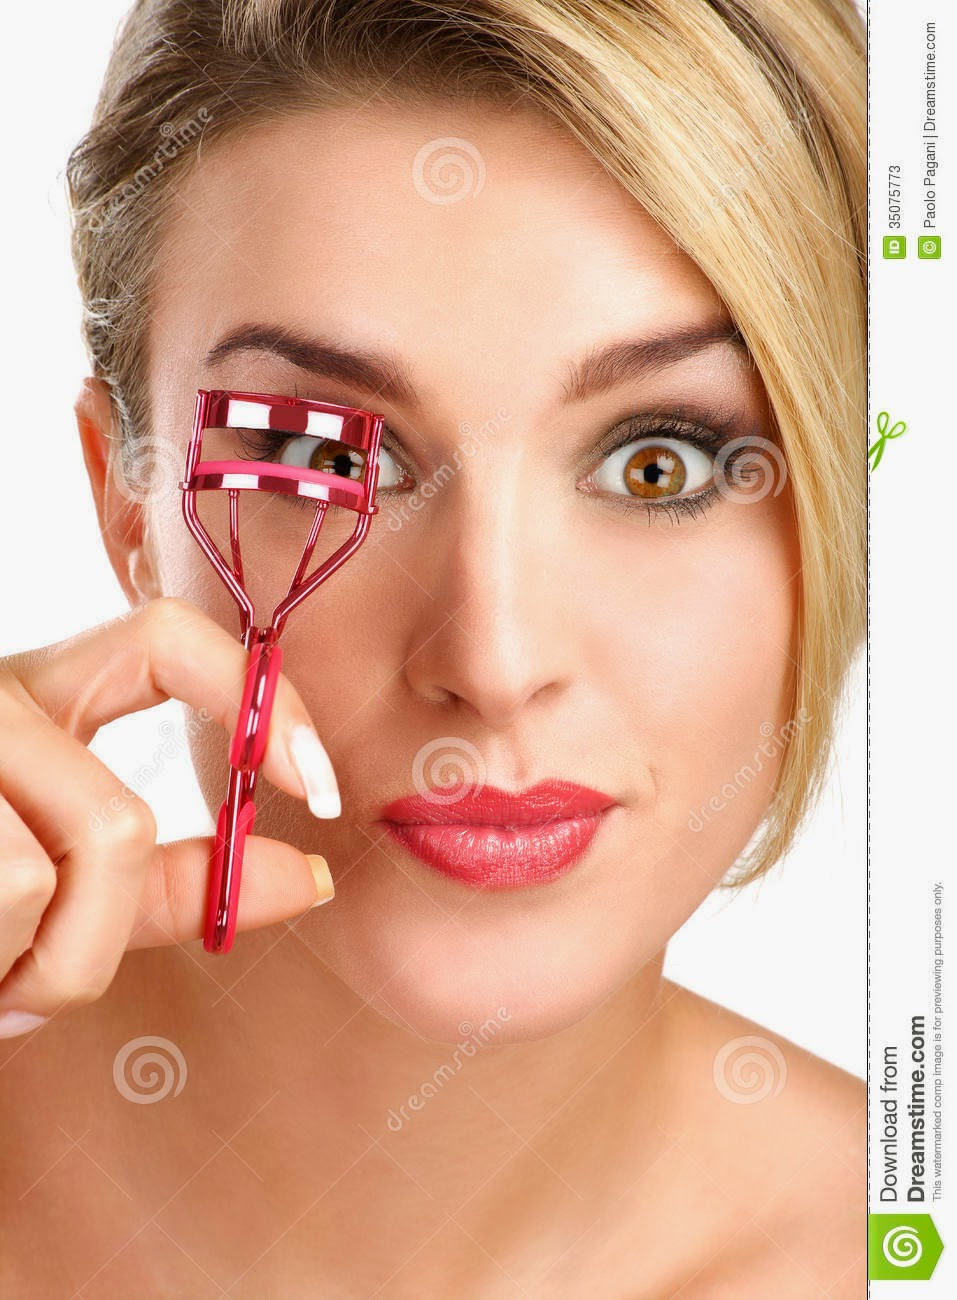 use-eyelash-curler